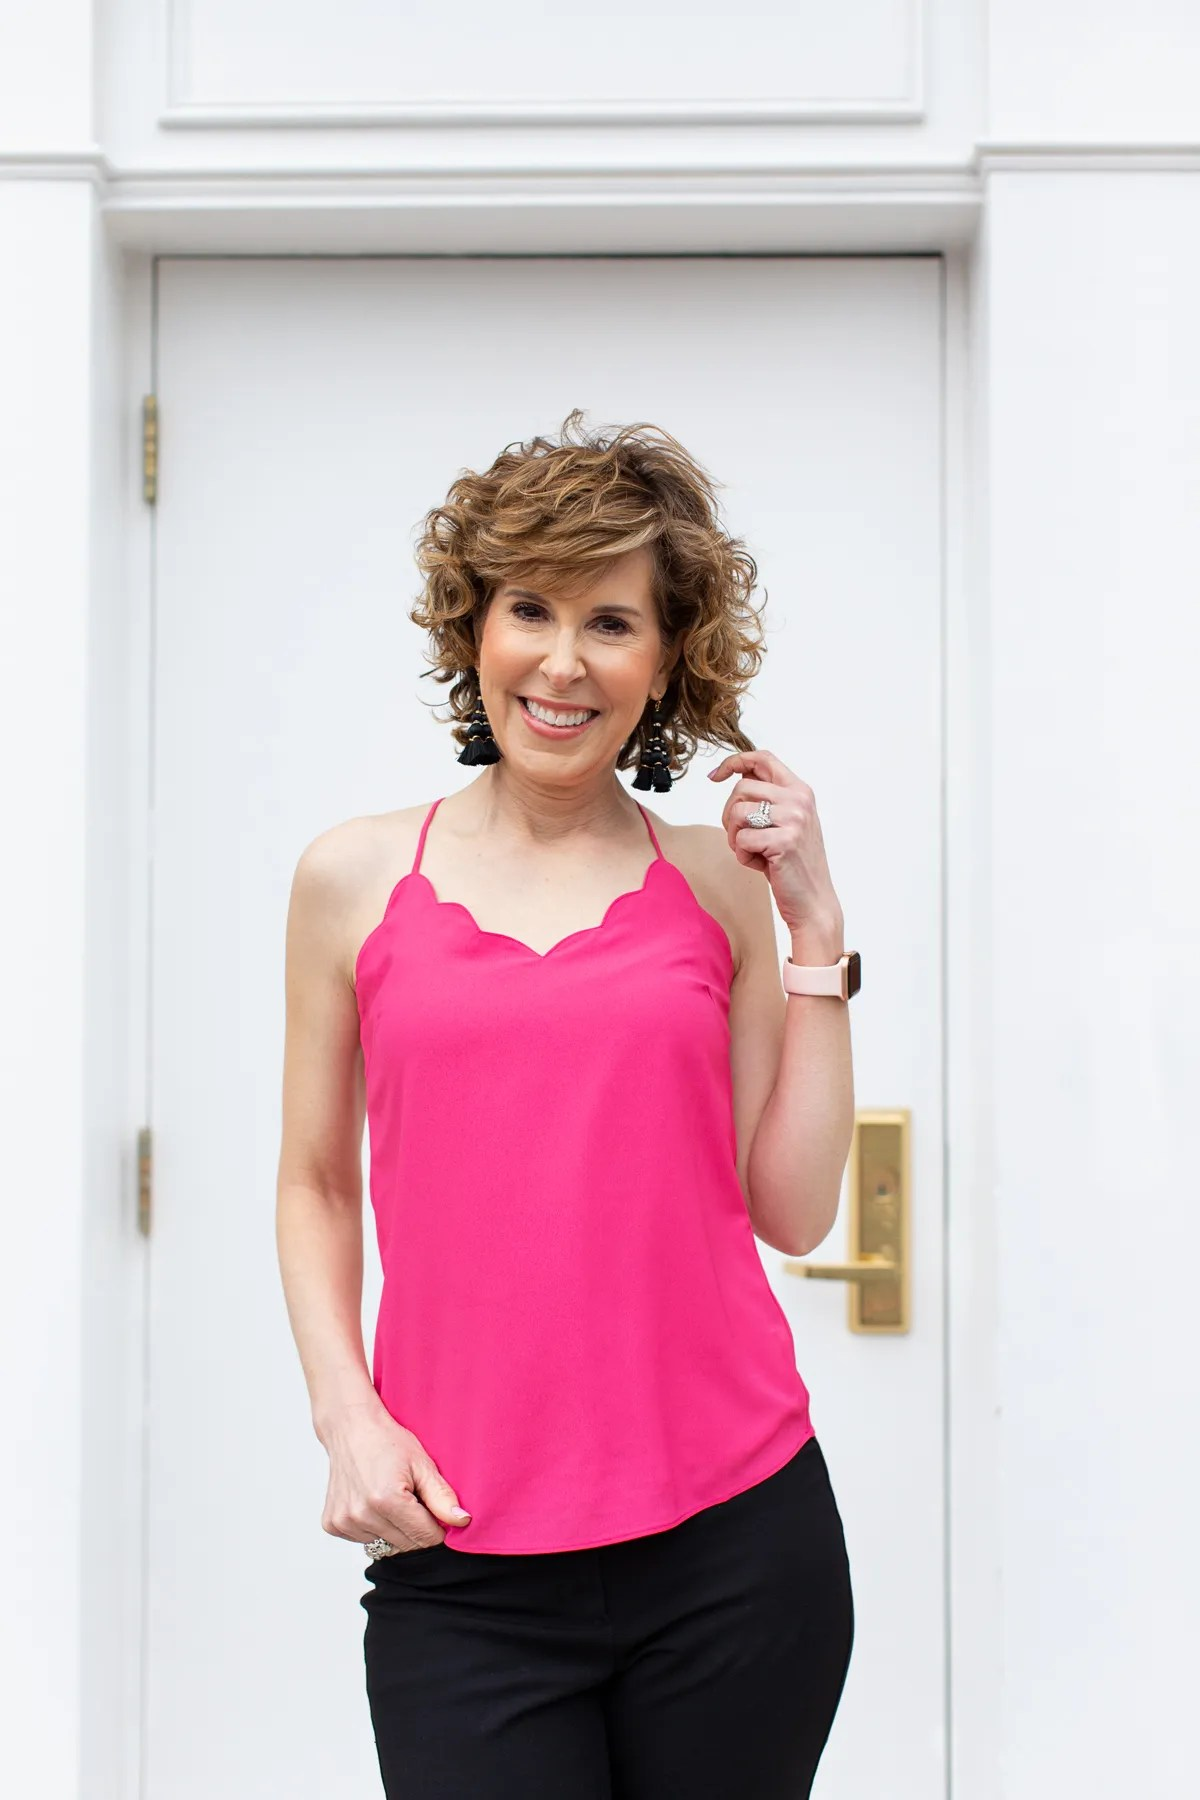 woman standing in front of doorway wearing pink top